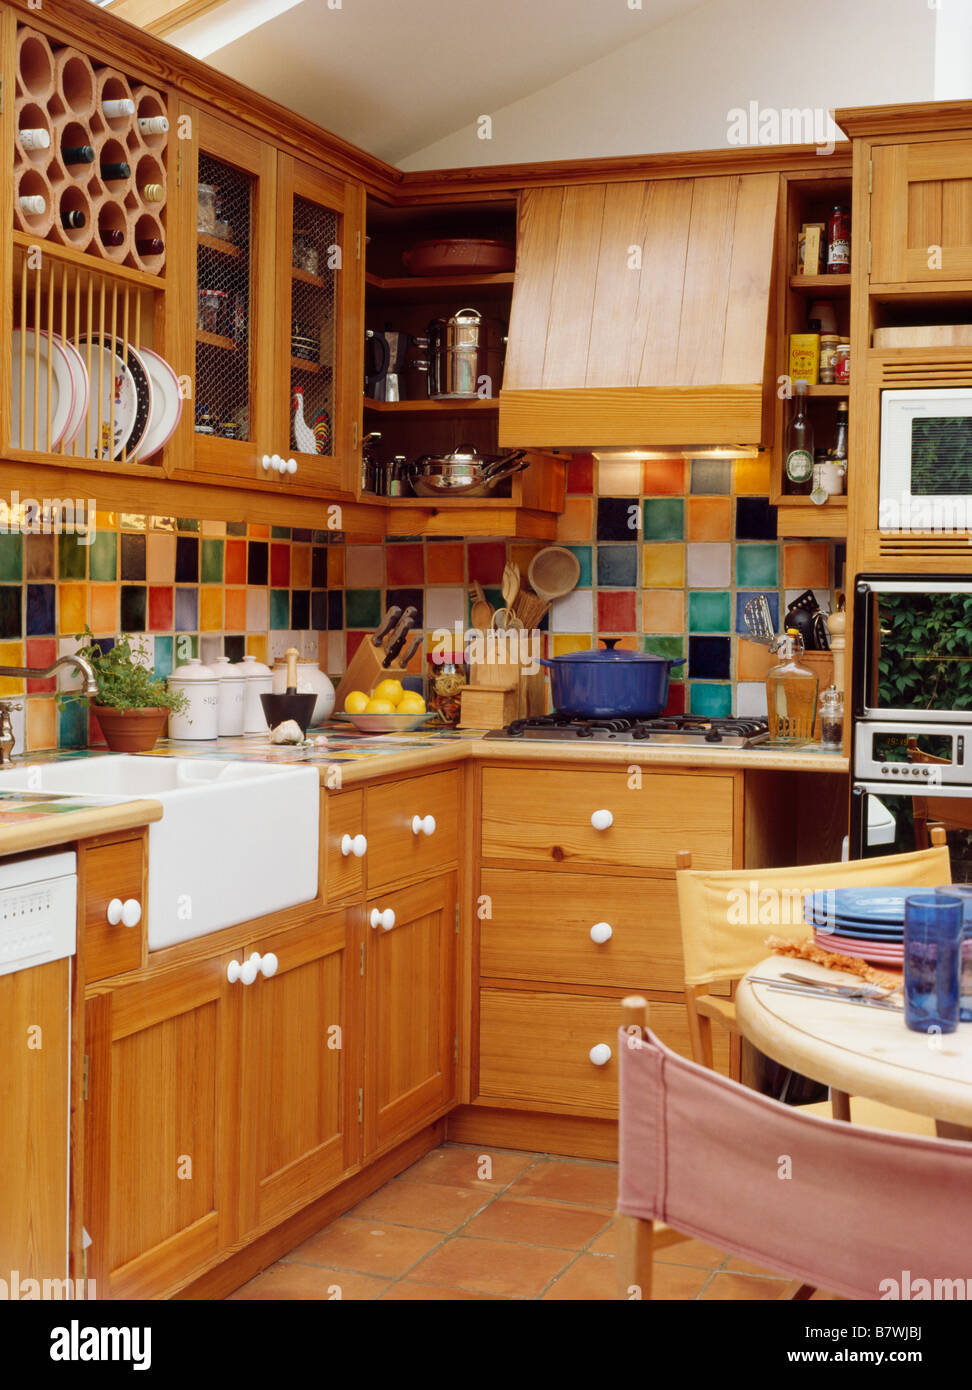 Multi Coloured Wall Tiles In Kitchen Dining Room With